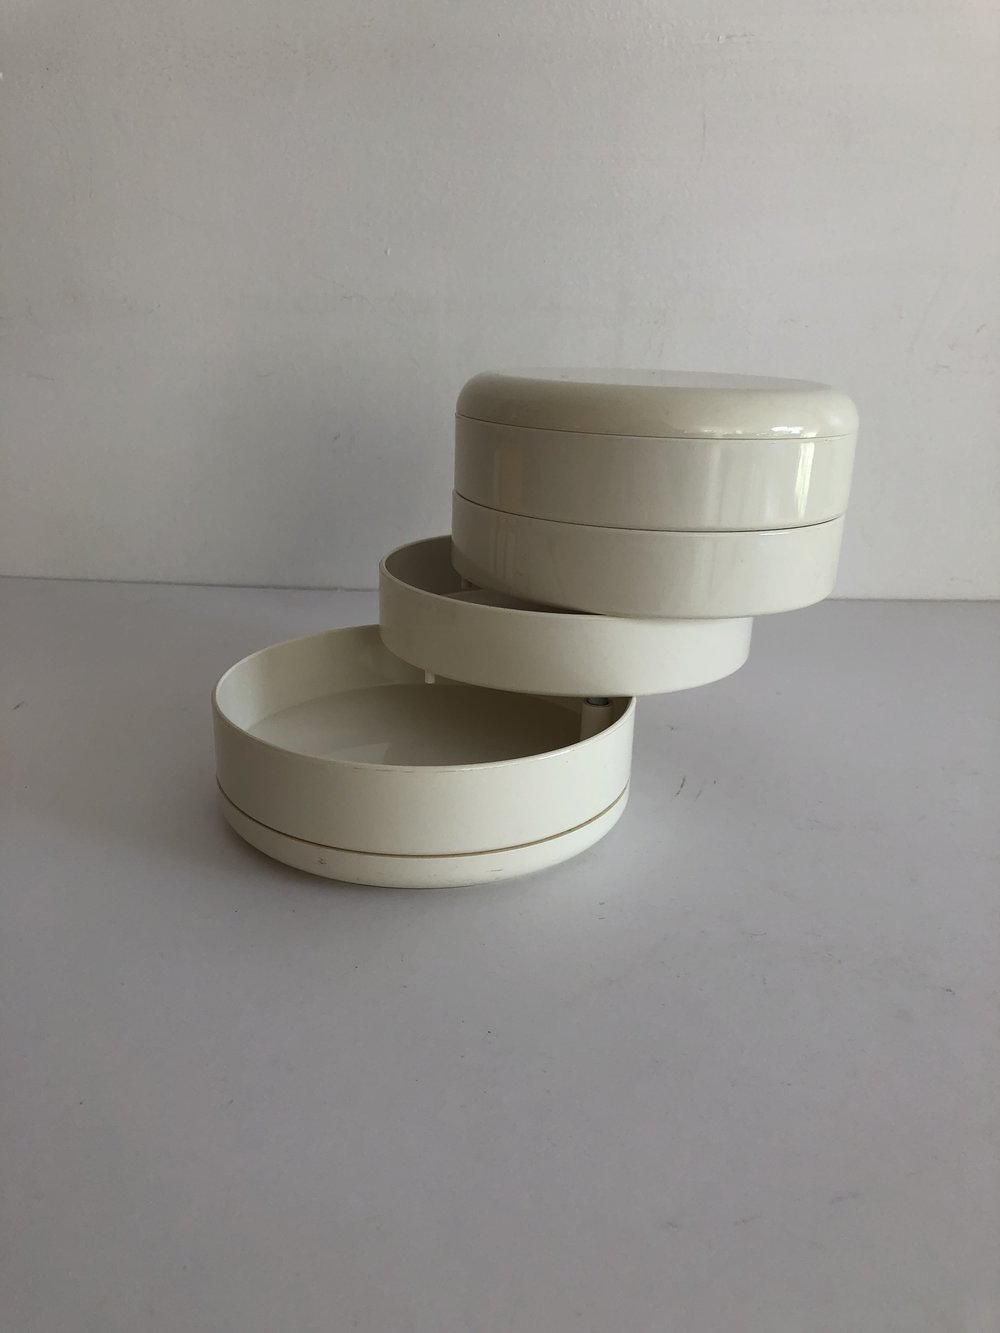 1970s White Plastic InterDesign Swivel Jewelry Box Organizer